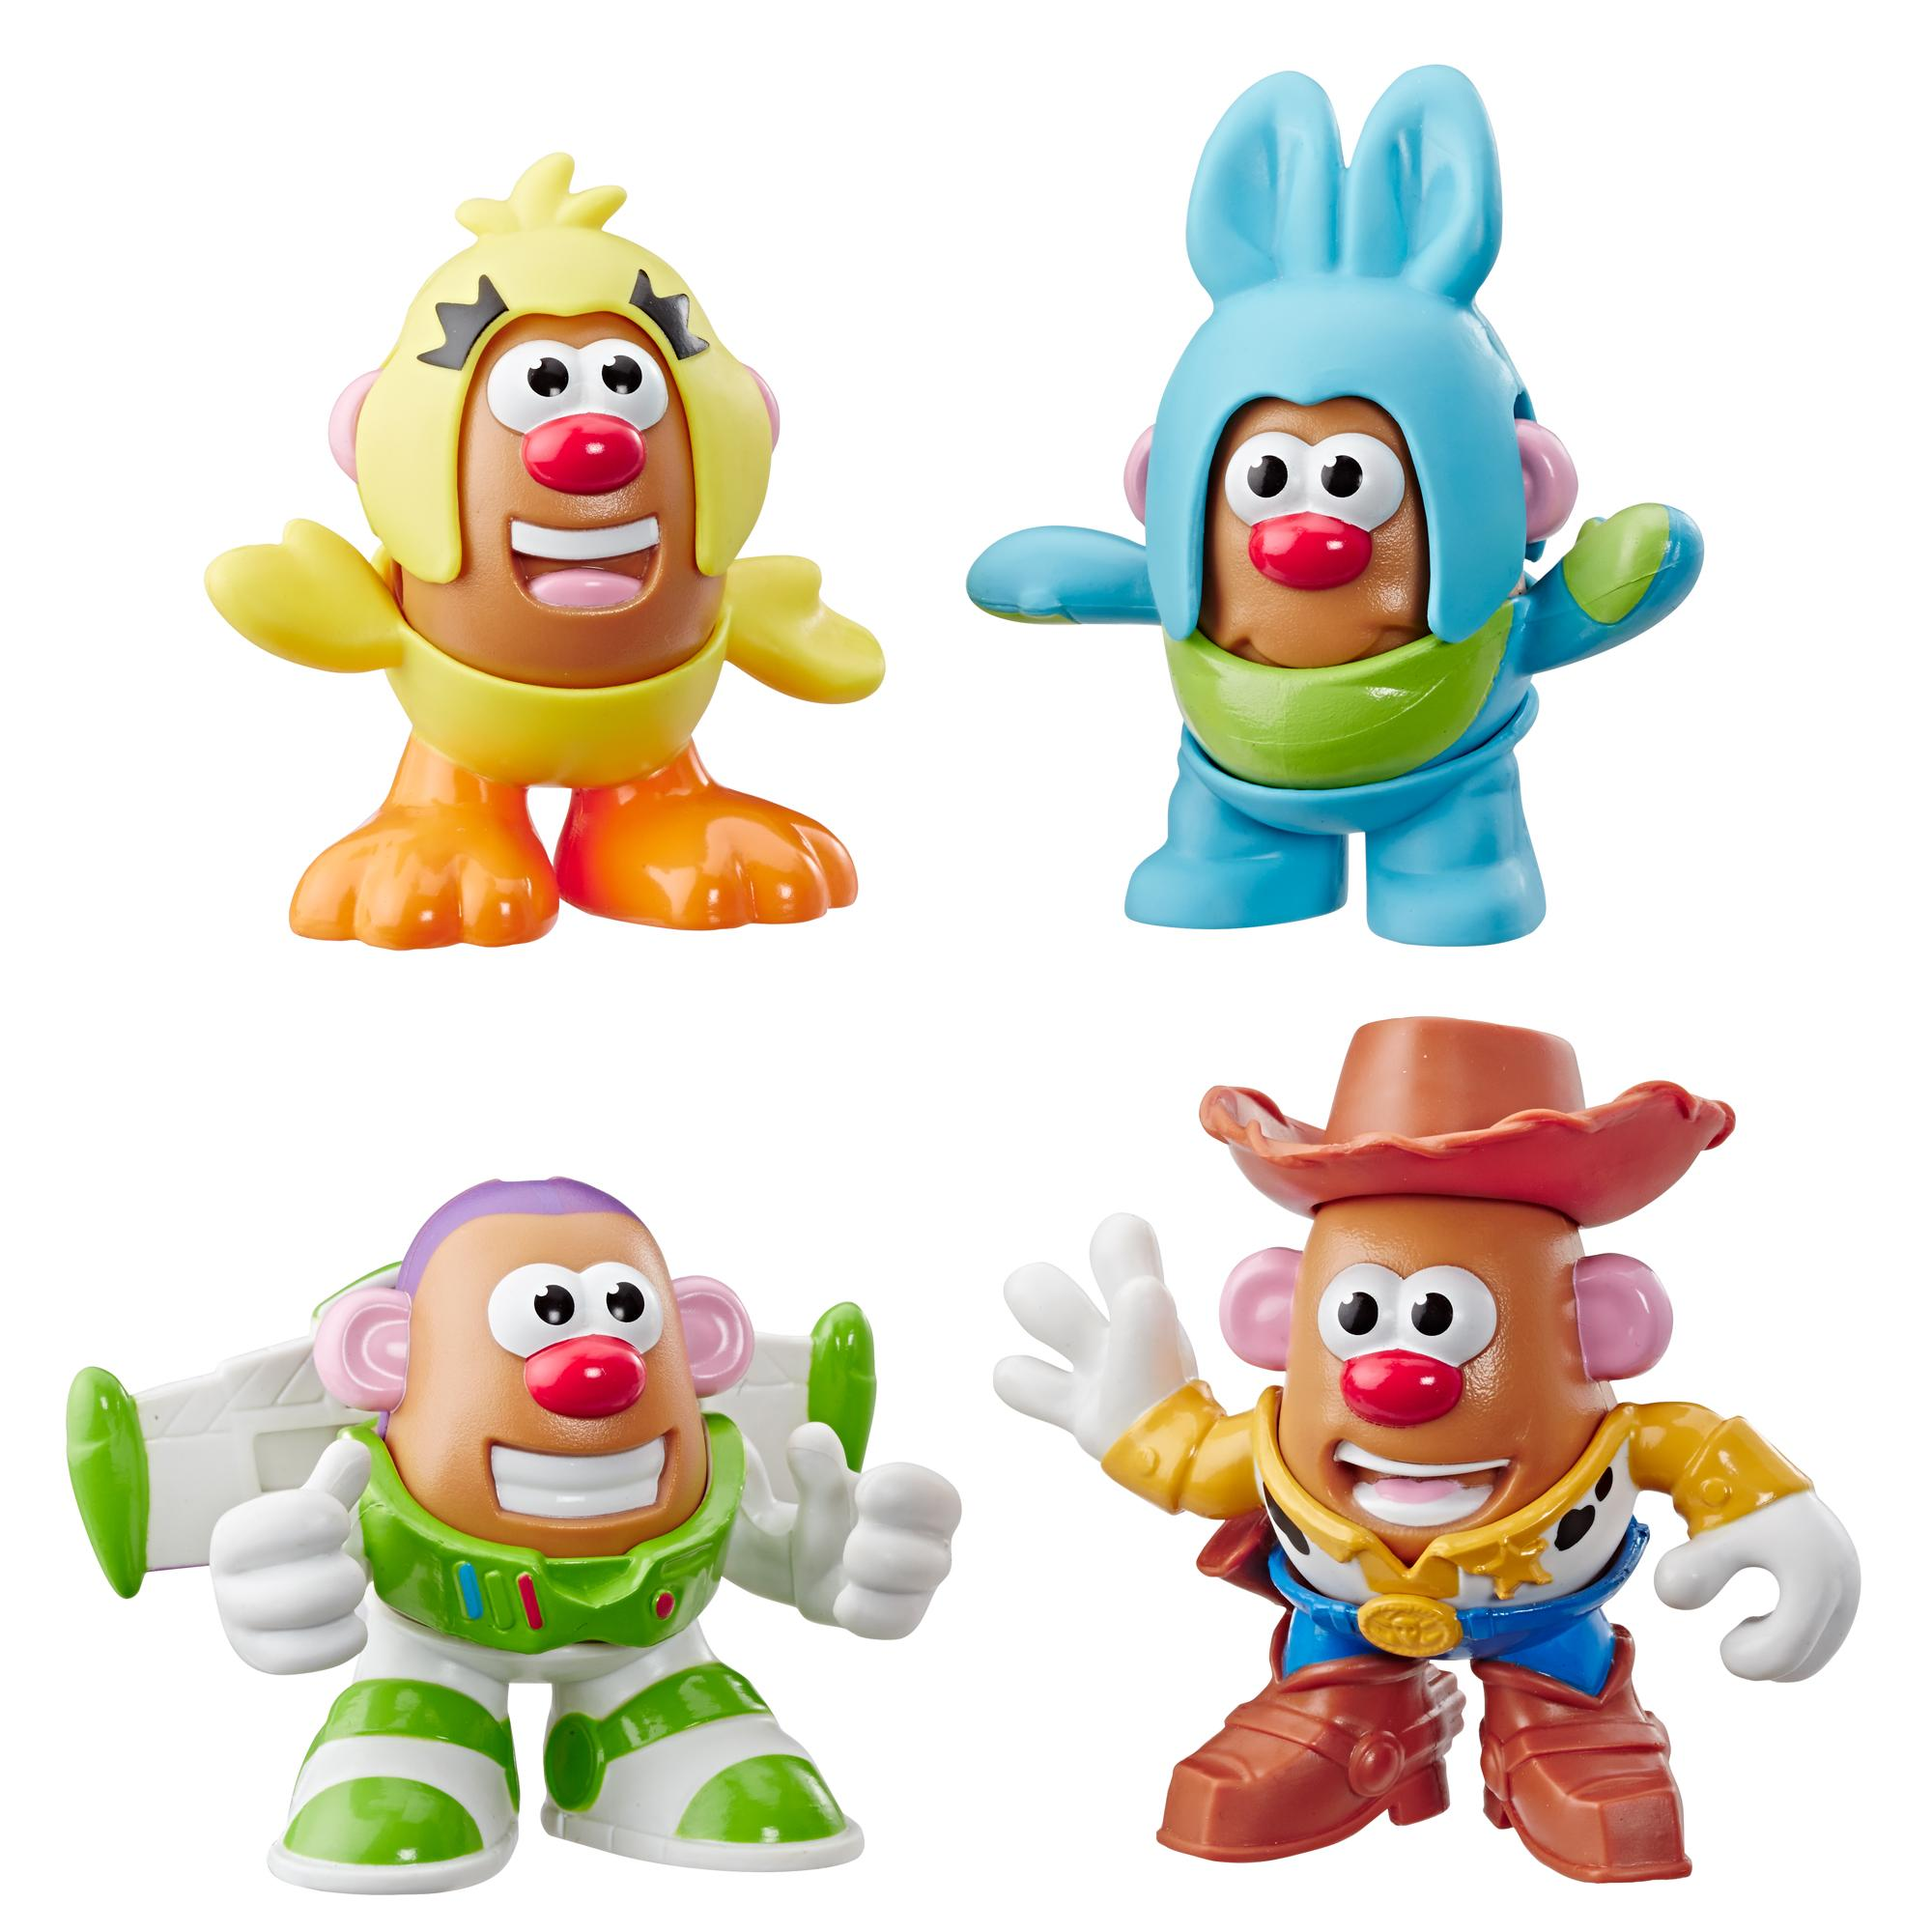 Mr. Potato Head Disney/Pixar - Miniempaque de 4 Toy Story